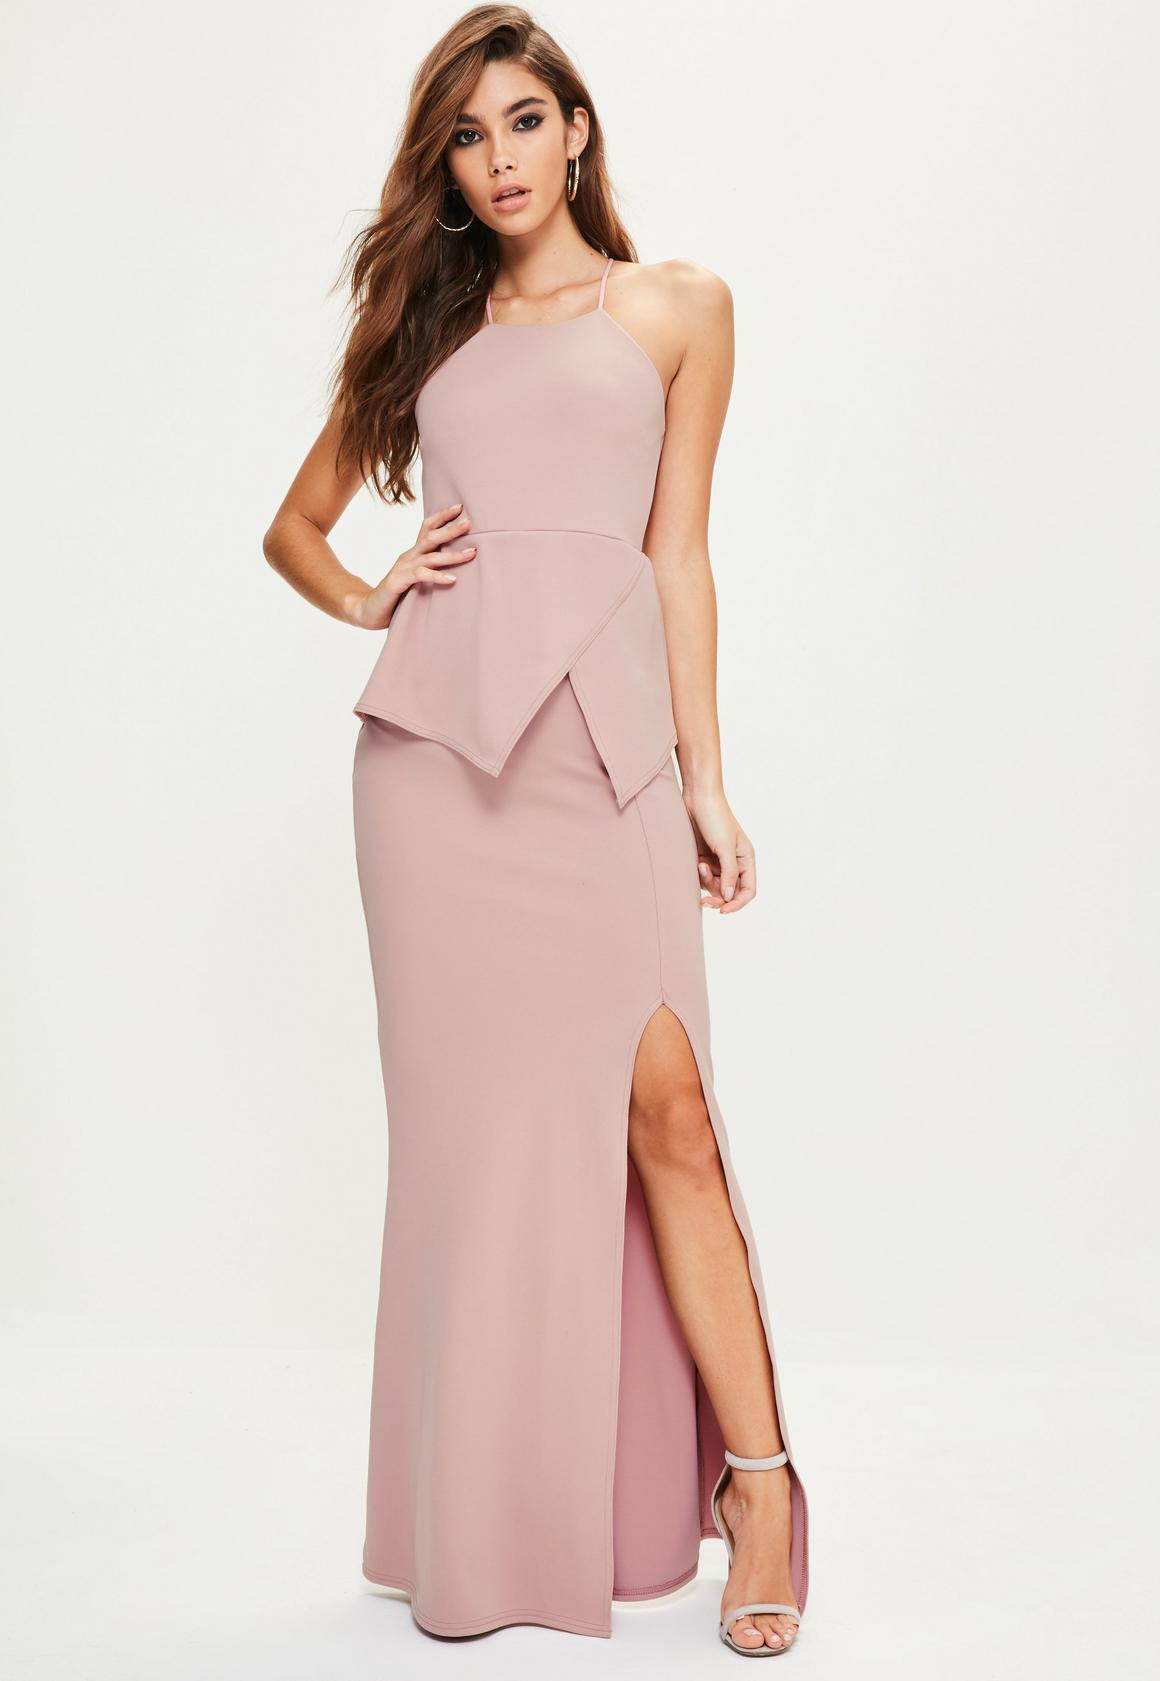 Pink Square Neck Origami Cross Back Maxi Dress | Missguided